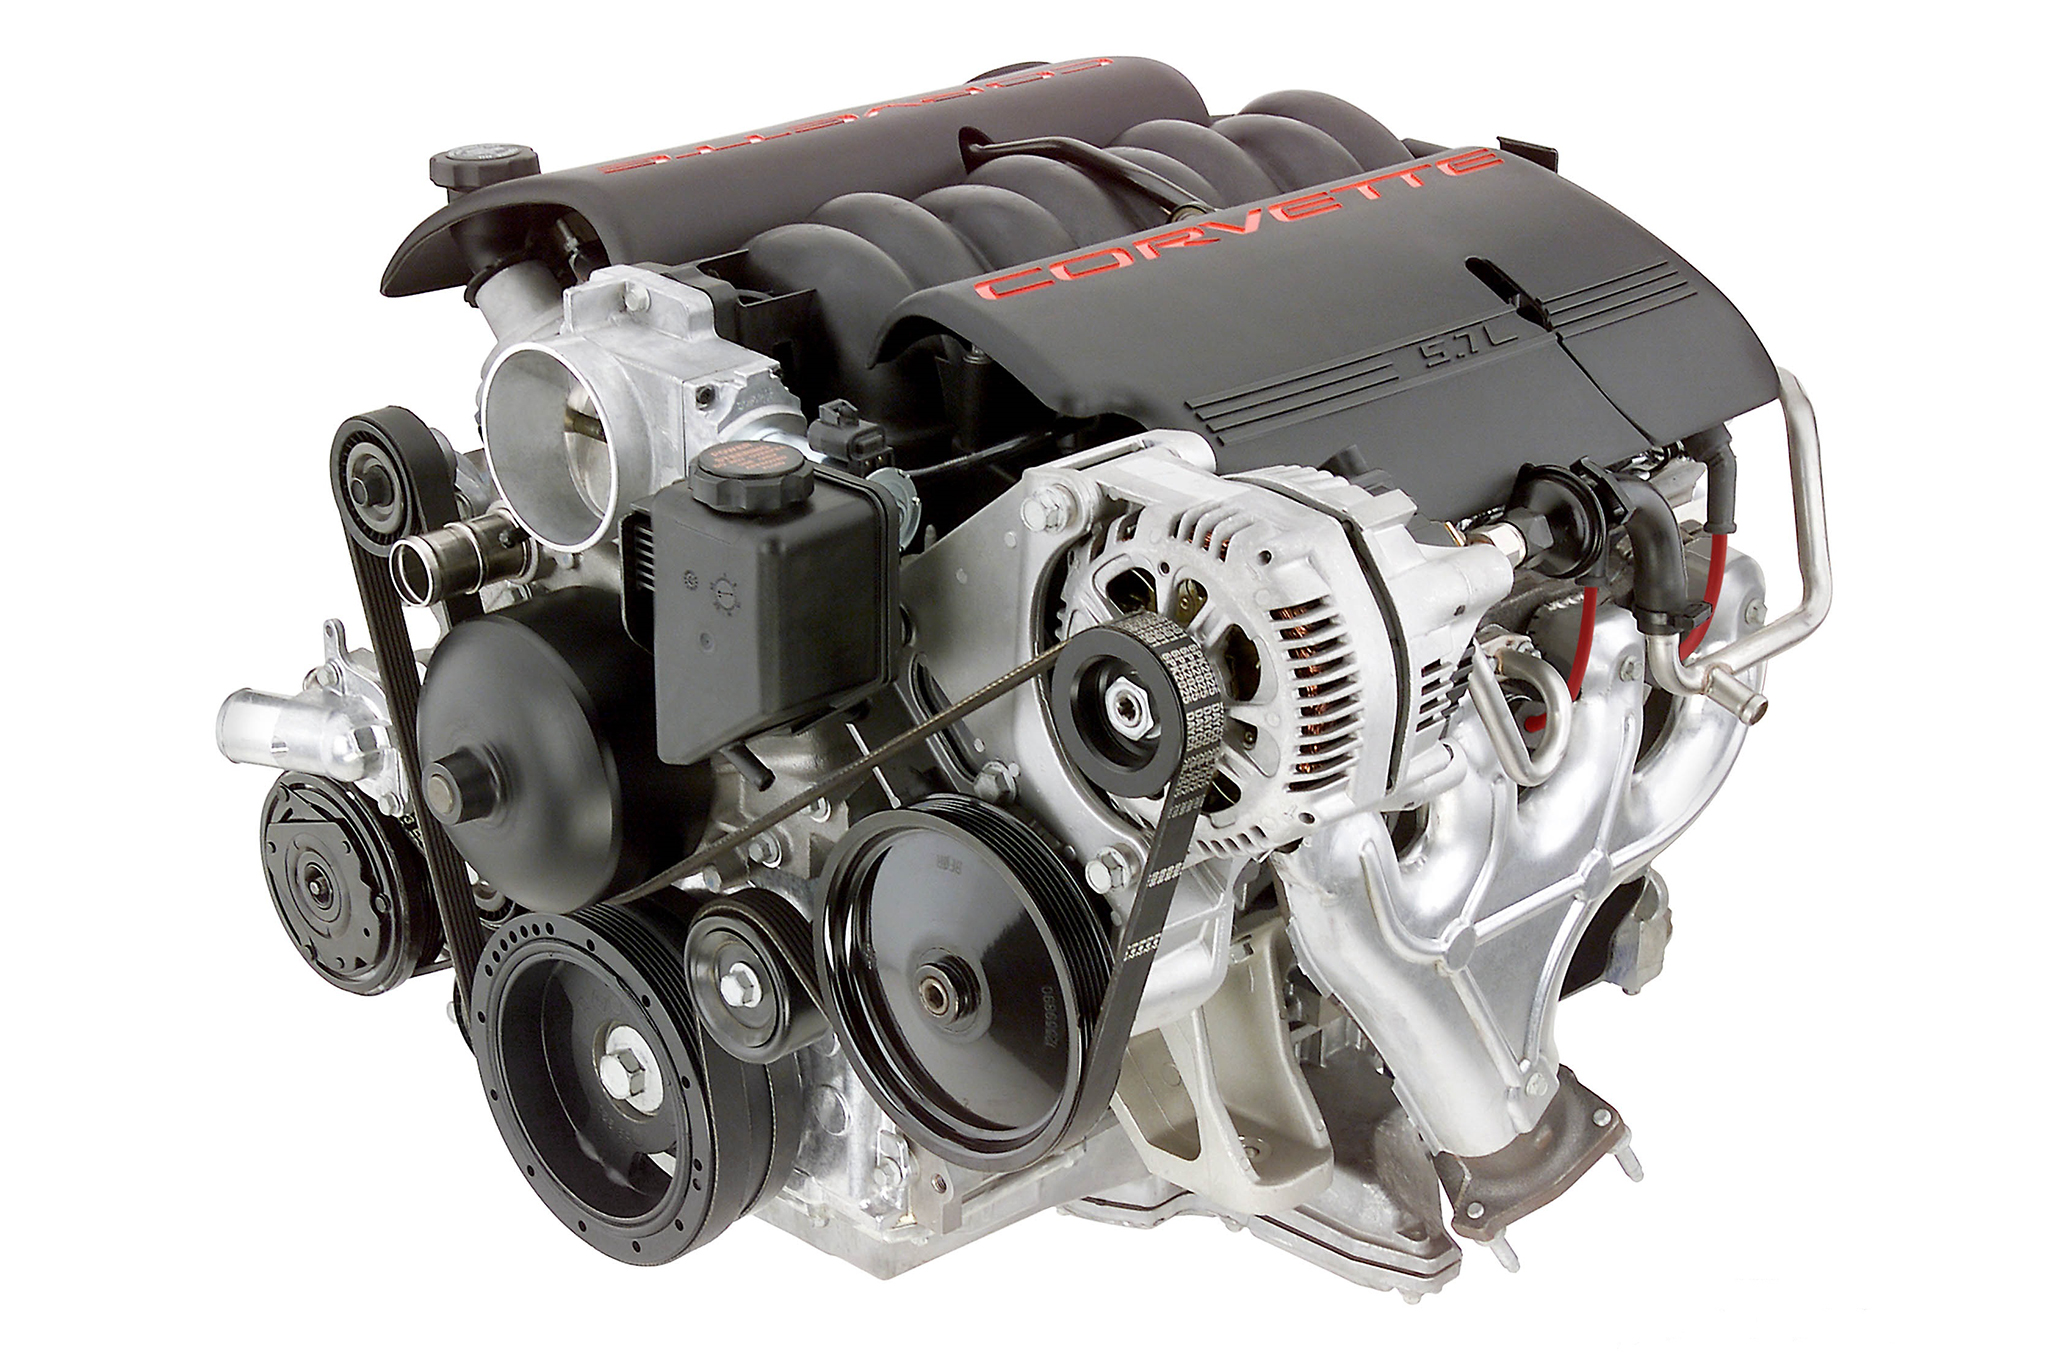 The LS1 engine, introduced in the Camaro in 1998, returned a level of performance that hadn't been seen since the heyday of the muscle car. Better still, it responded to upgrades such as camshafts and cylinder head porting like a fedora-wearing hipster let loose in a vinyl-only record store.